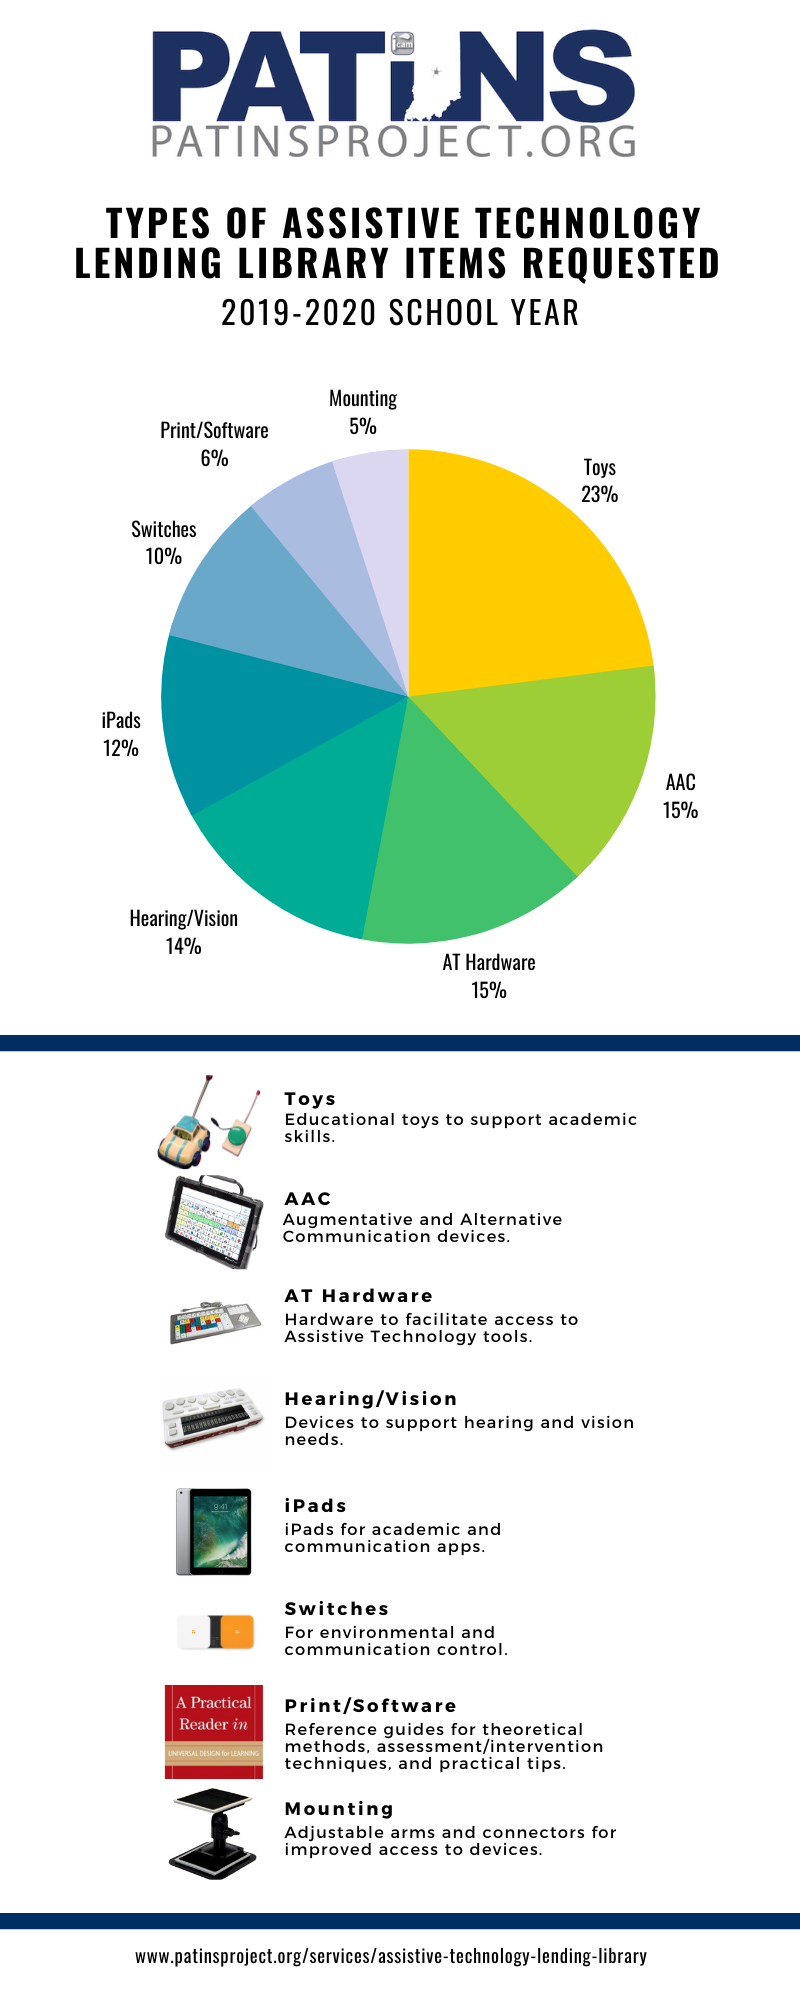 Types of Assistive Technology Lending Library Items Requested 2019-2020 School Year Infographic.